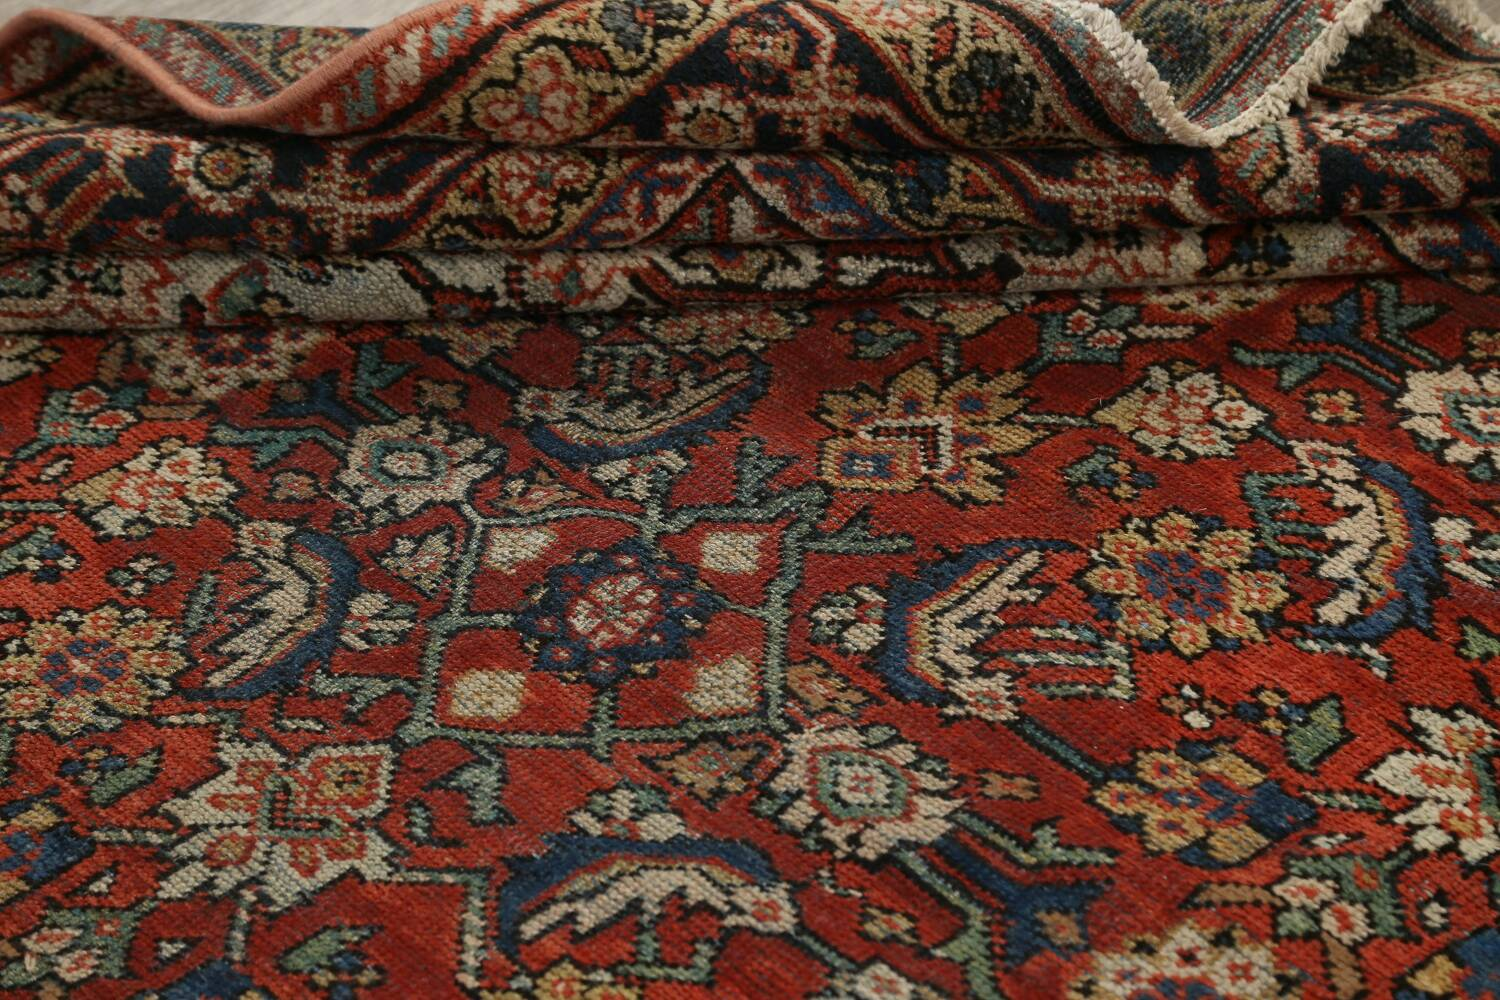 Pre-1900 Vegetable Dye Sultanabad Persian Area Rug 9x11 image 16